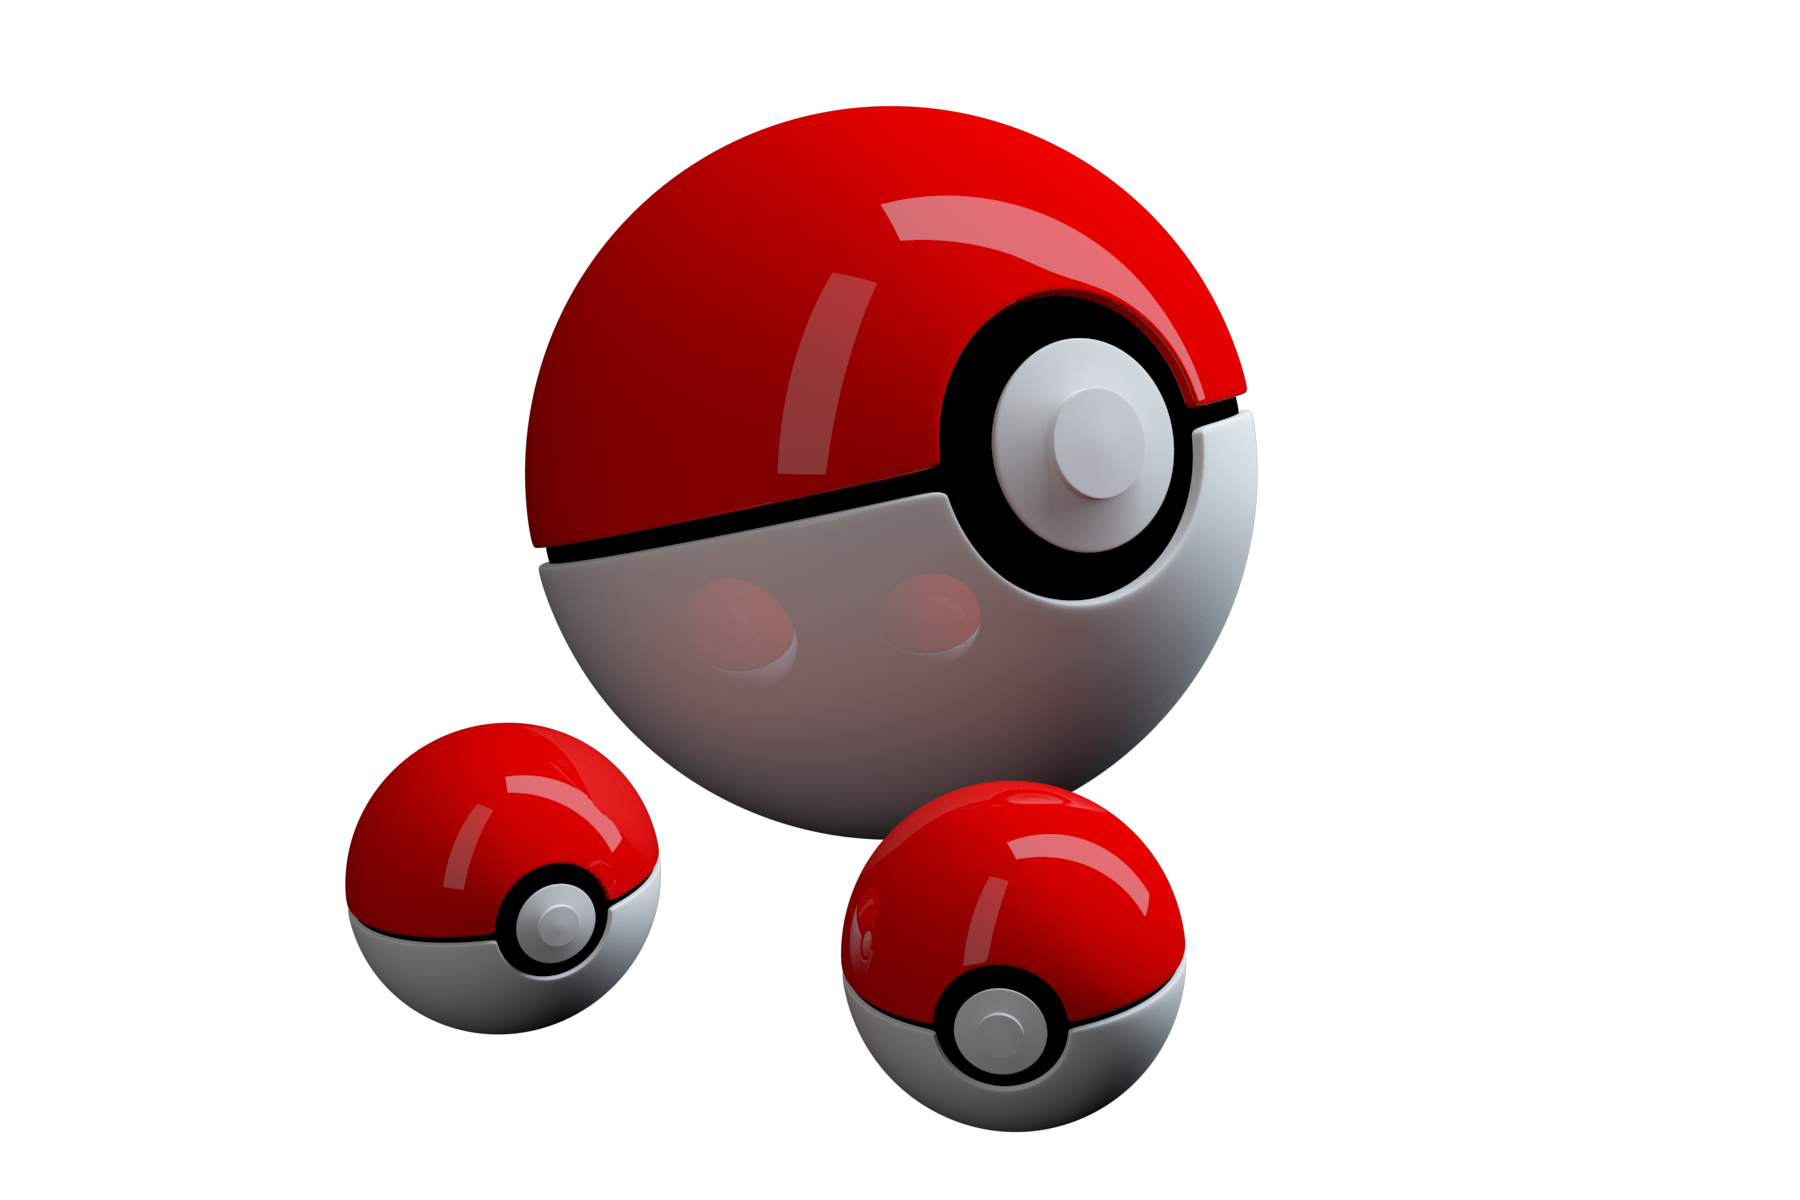 poke ball icon 45356 free icons and png backgrounds